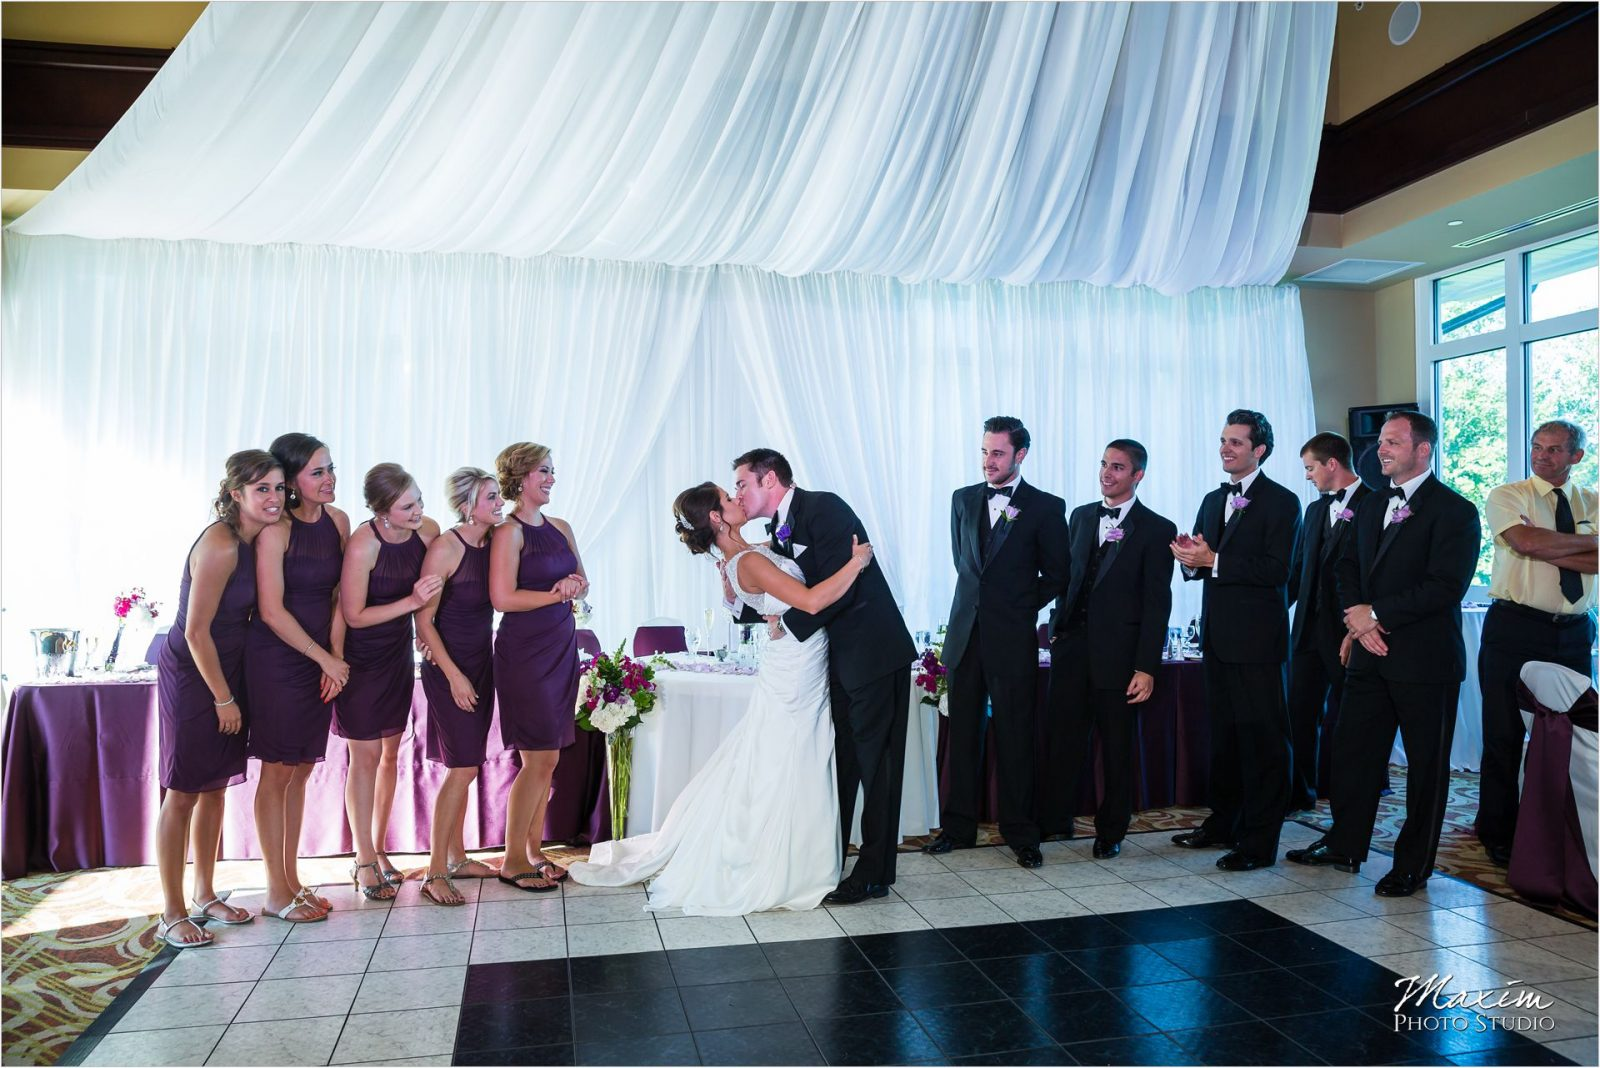 Country Club of the North Wedding Reception Bridal Party